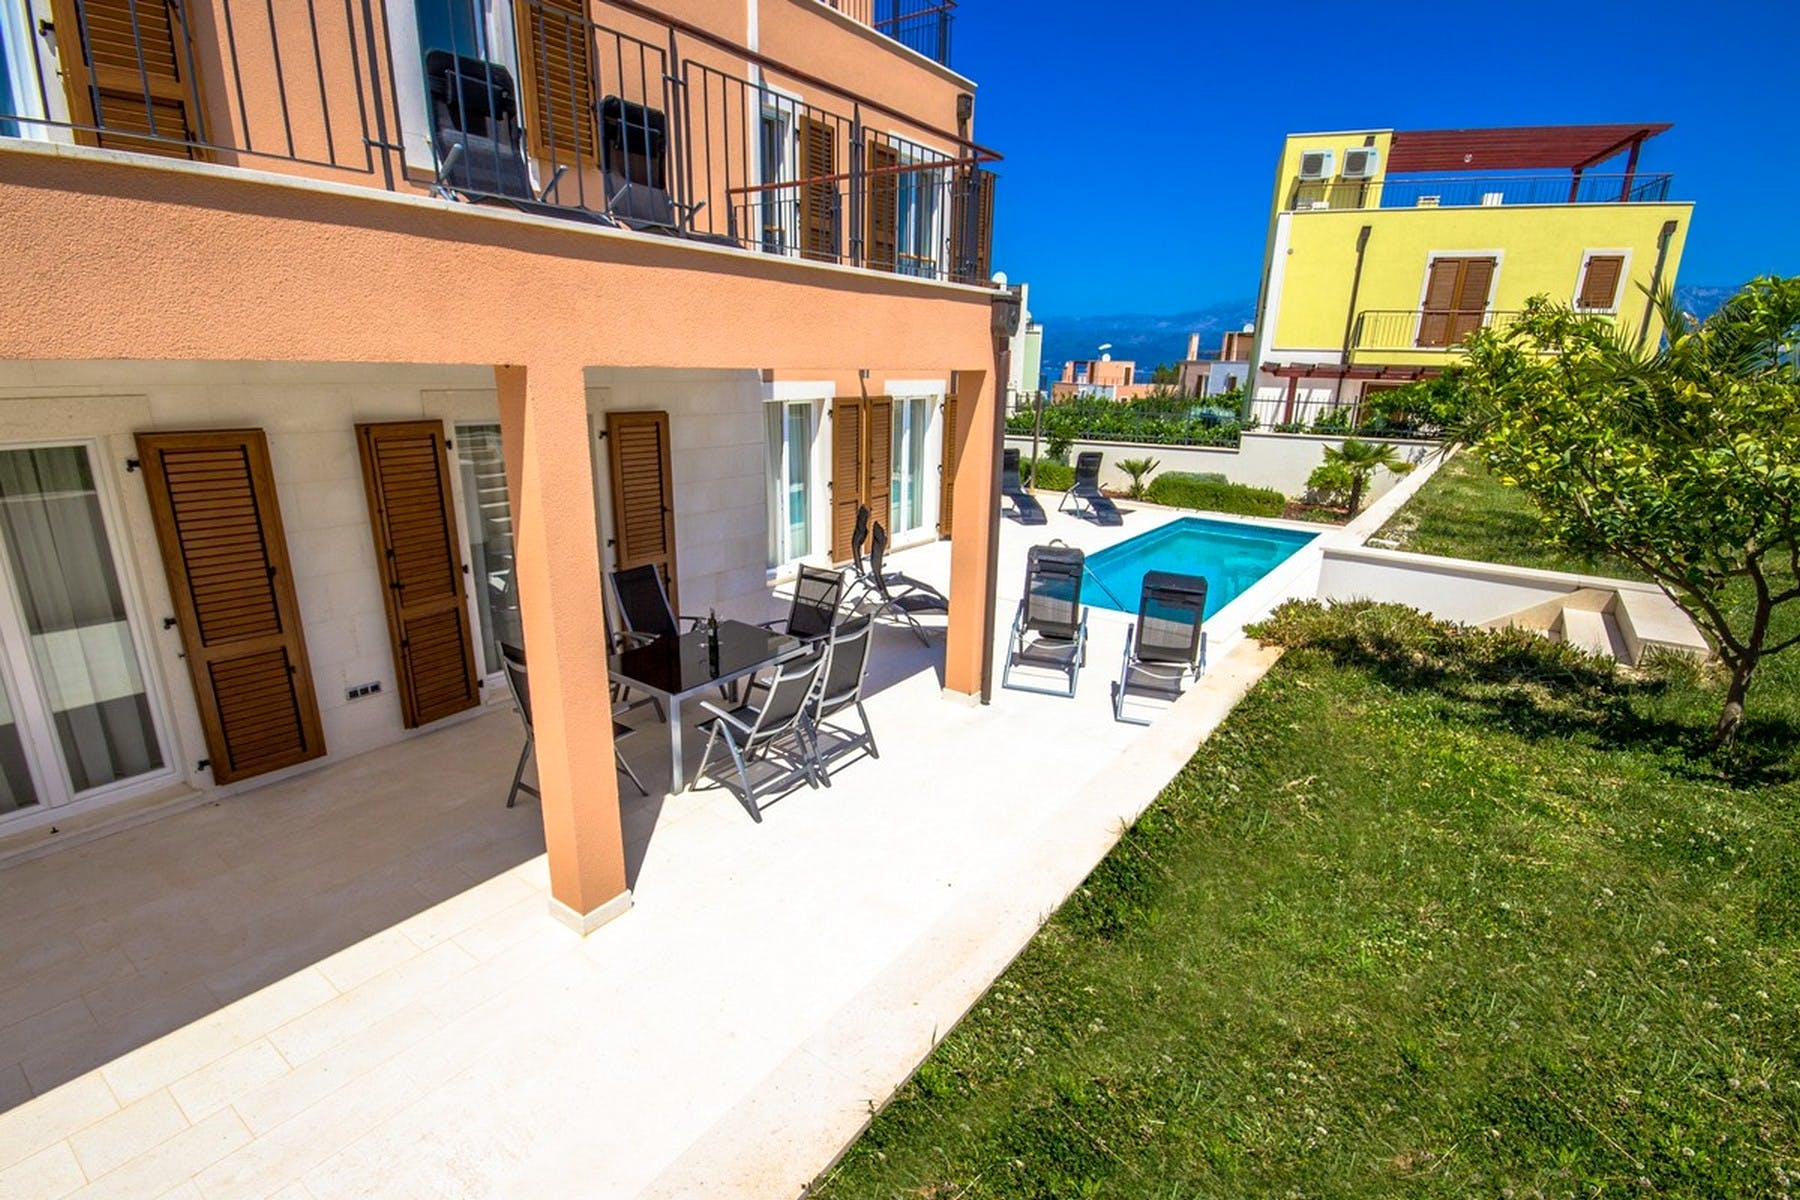 Spacious terrace with lounge area and a swimming pool